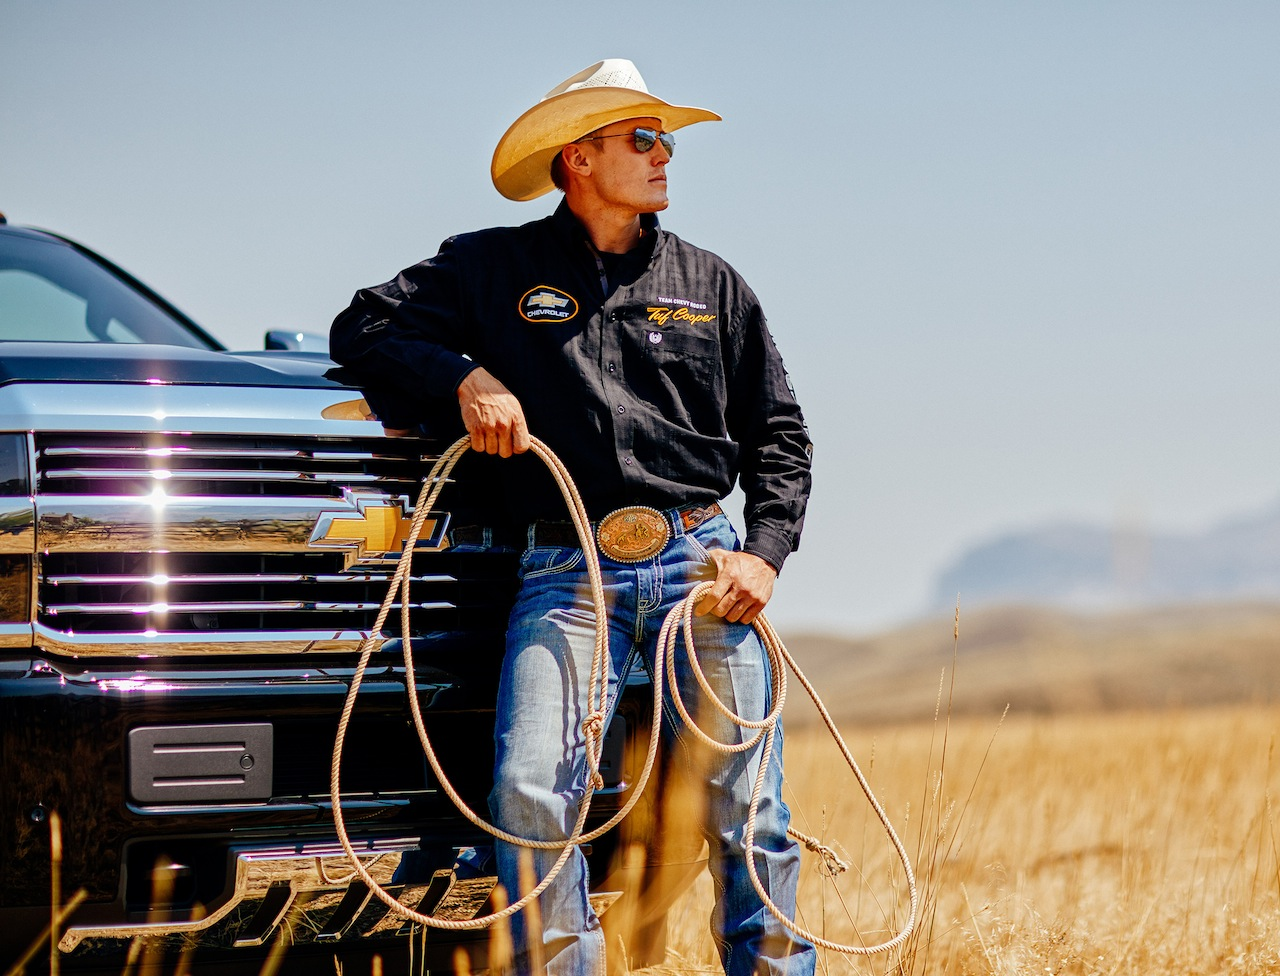 Chevy Silverado teams up with professional rodeo stars - ChevyTV